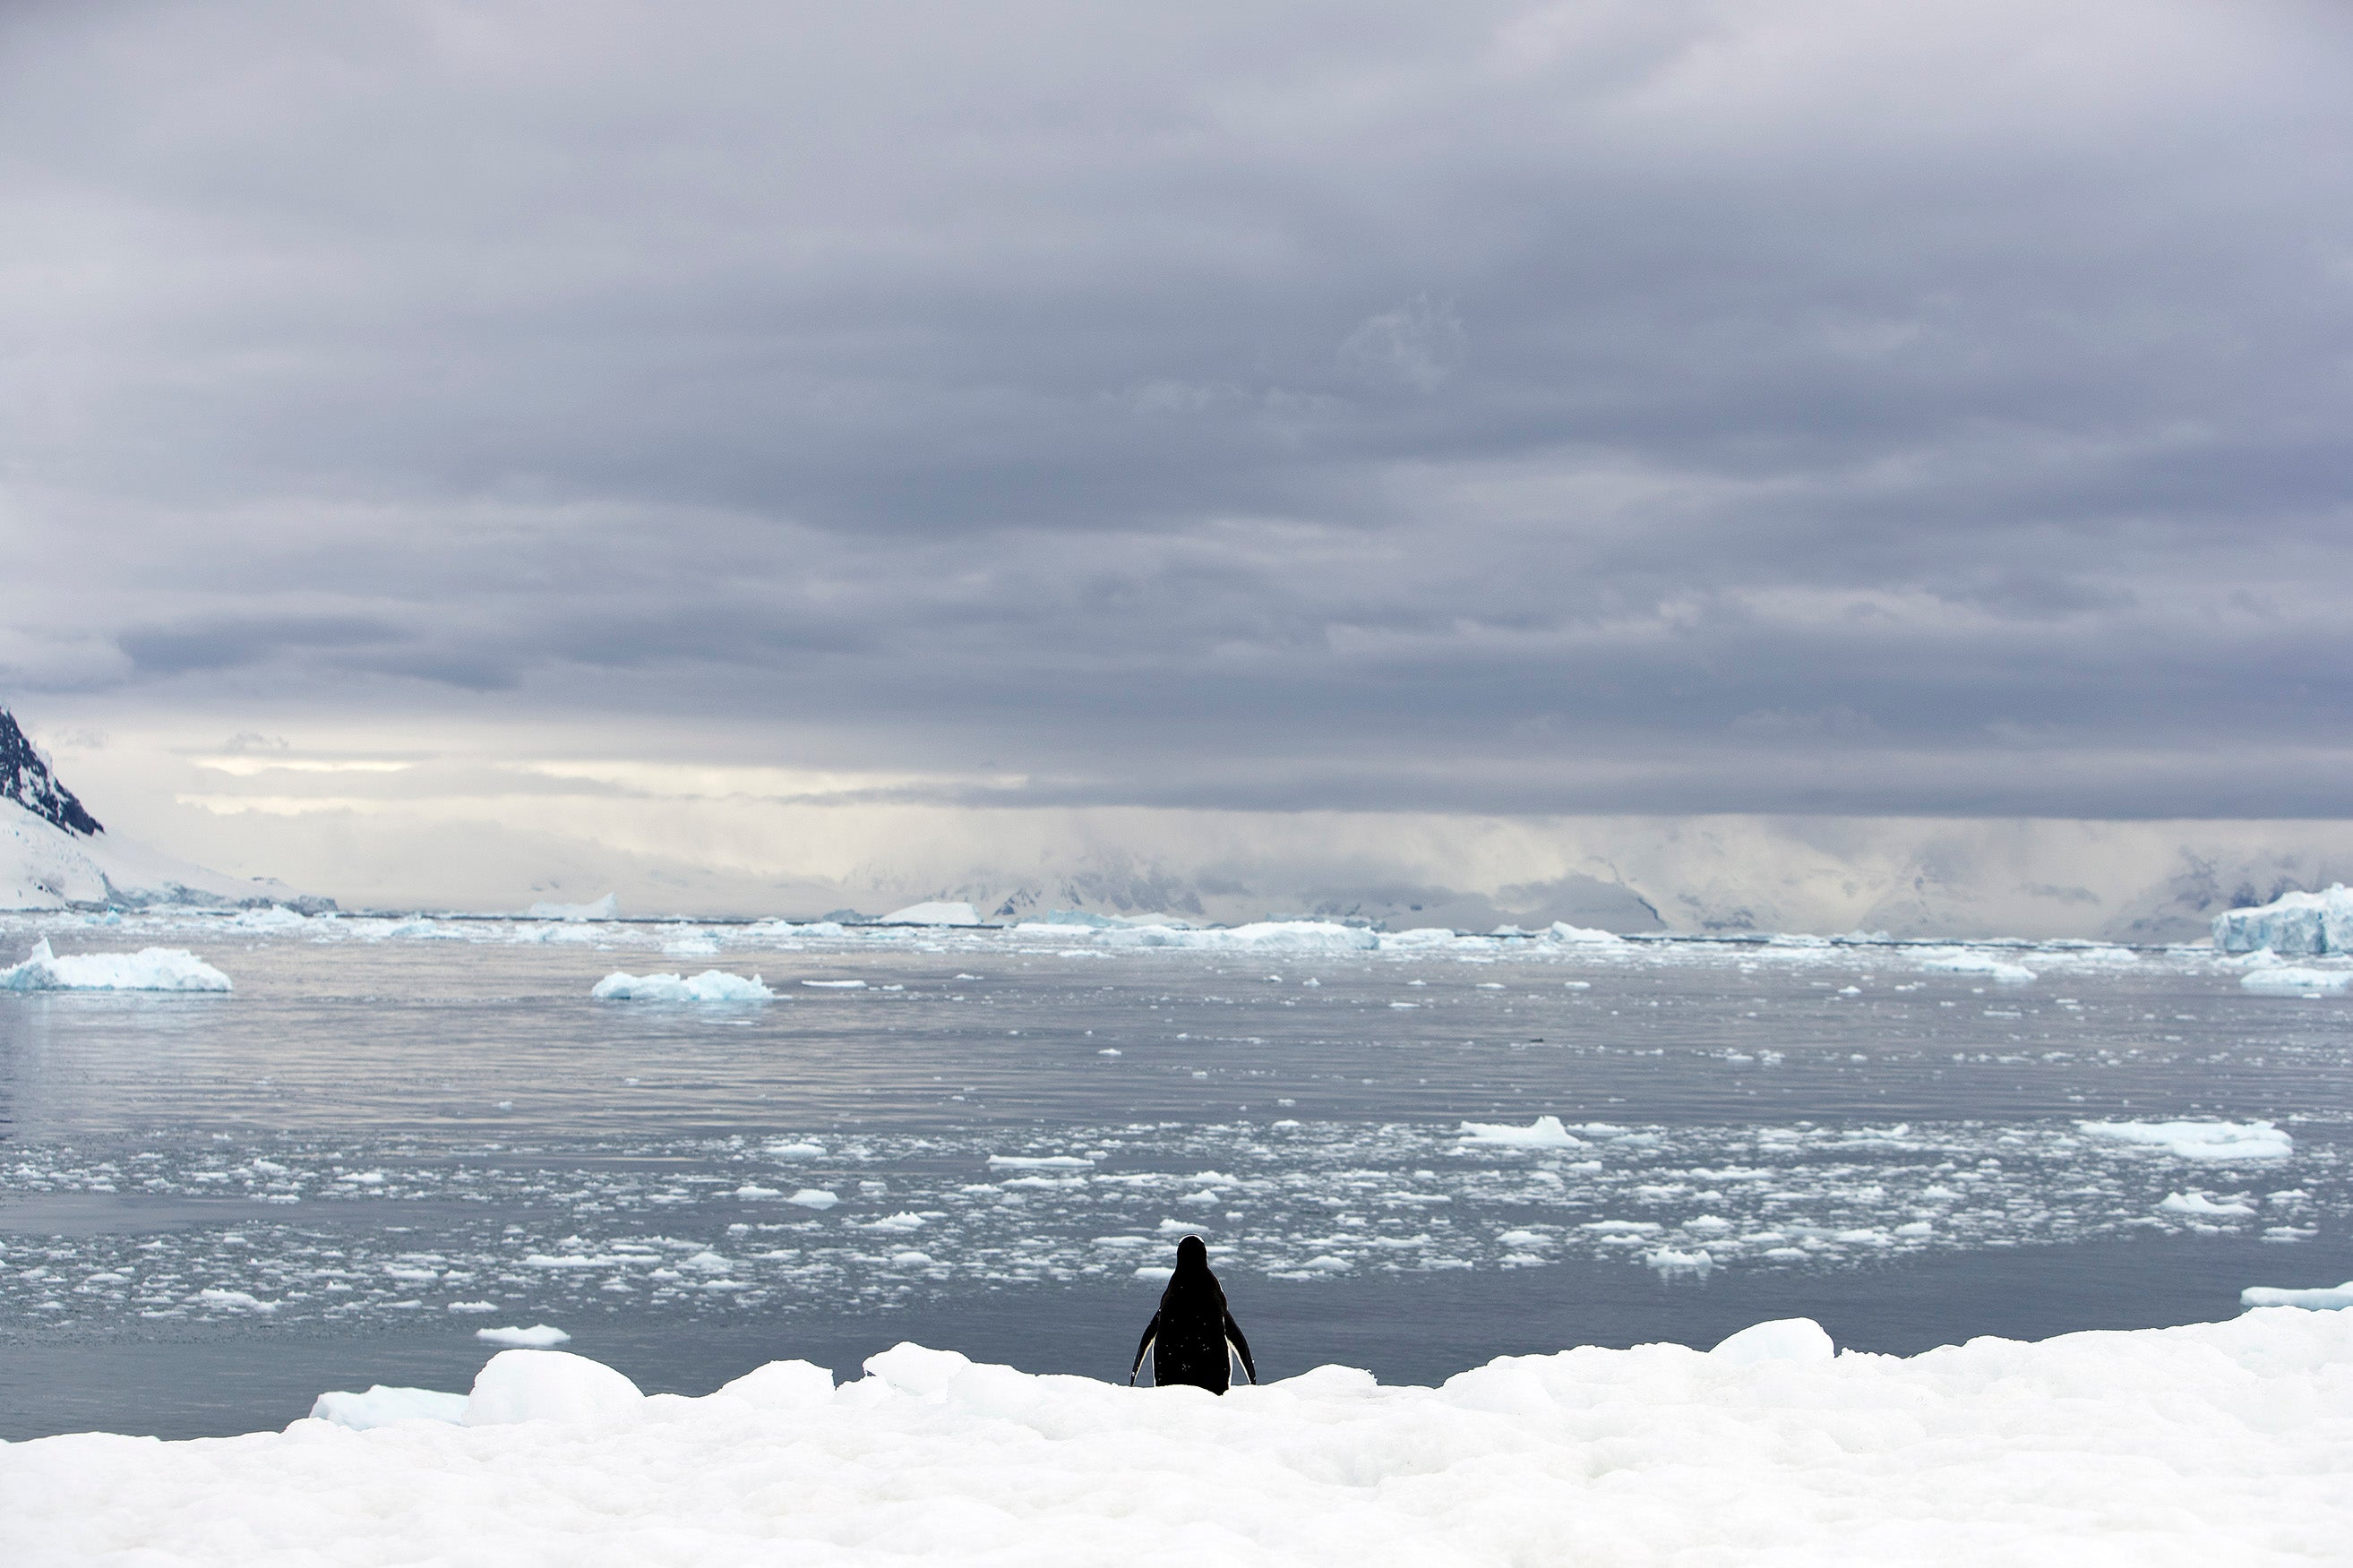 A lone penguin looks out to sea from the Antarctic ice shelf